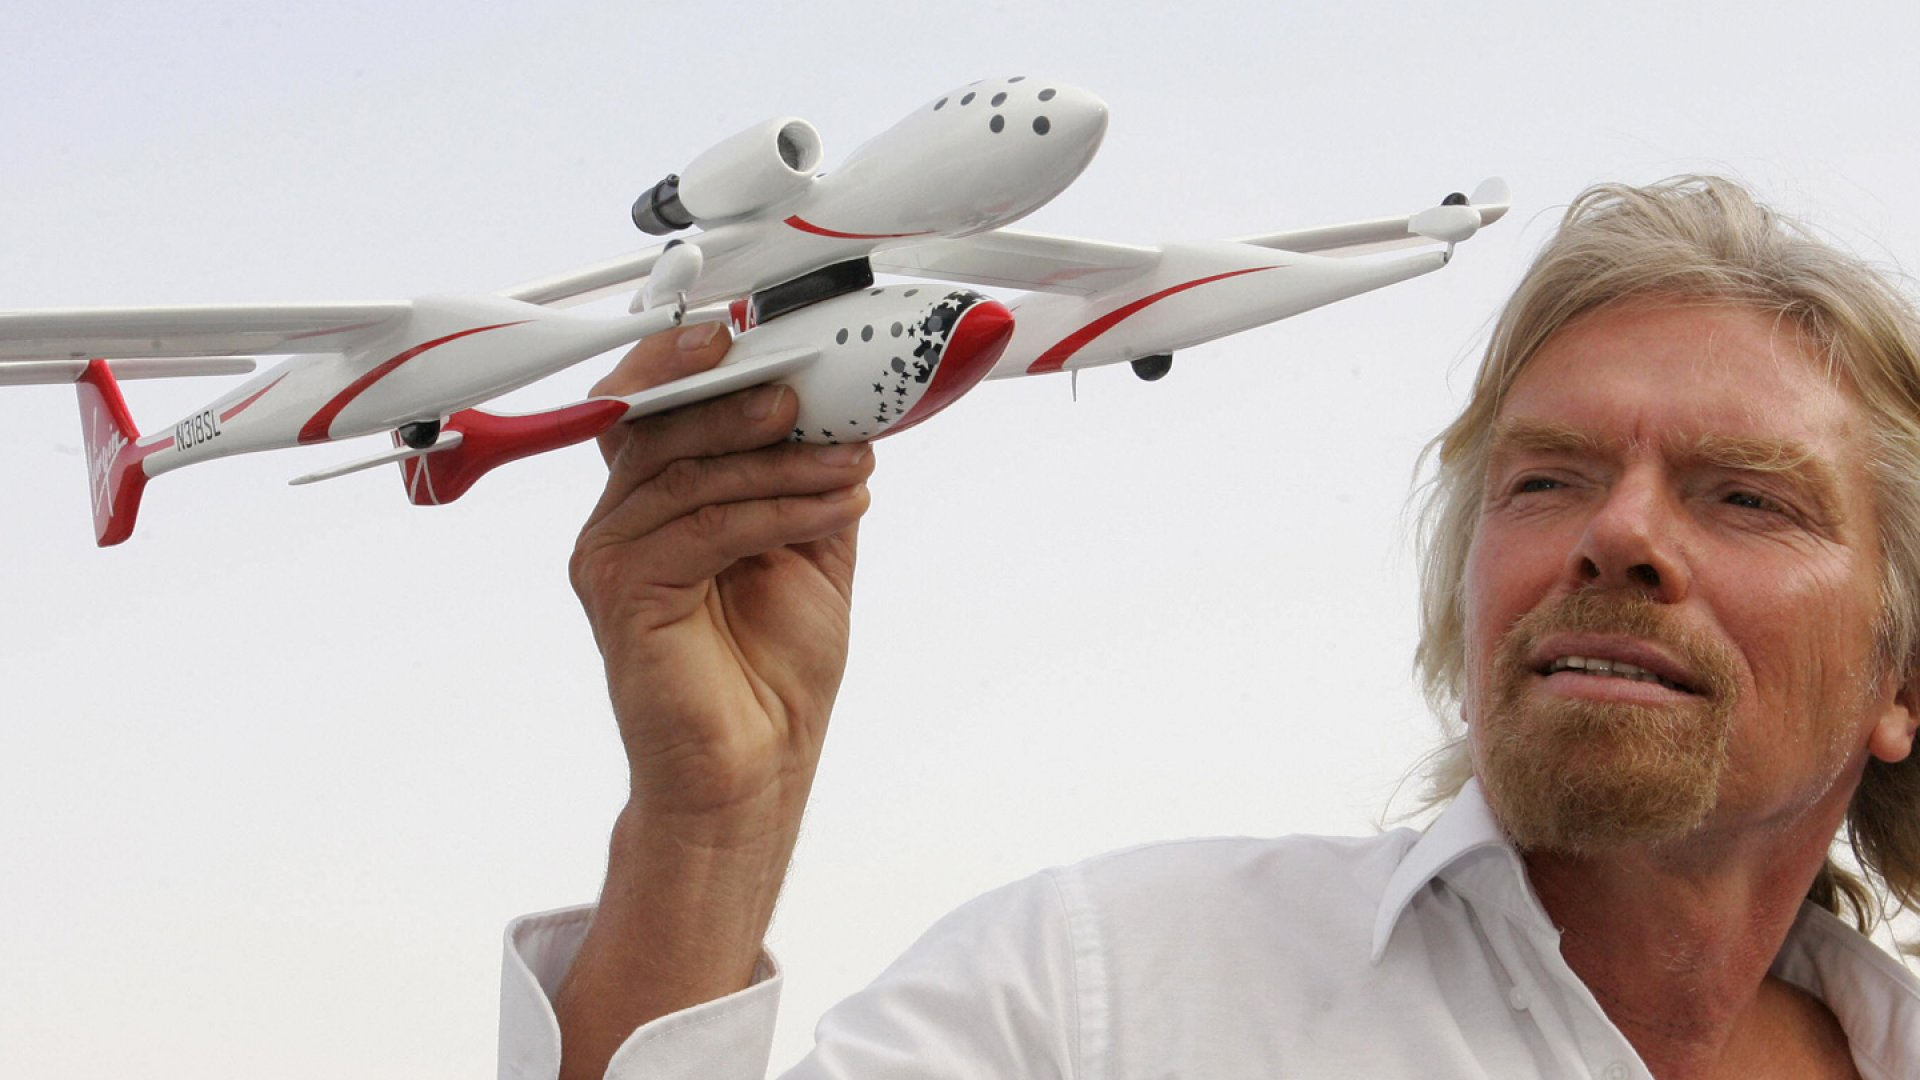 Richard Branson: 'Screw It. Just Do It'